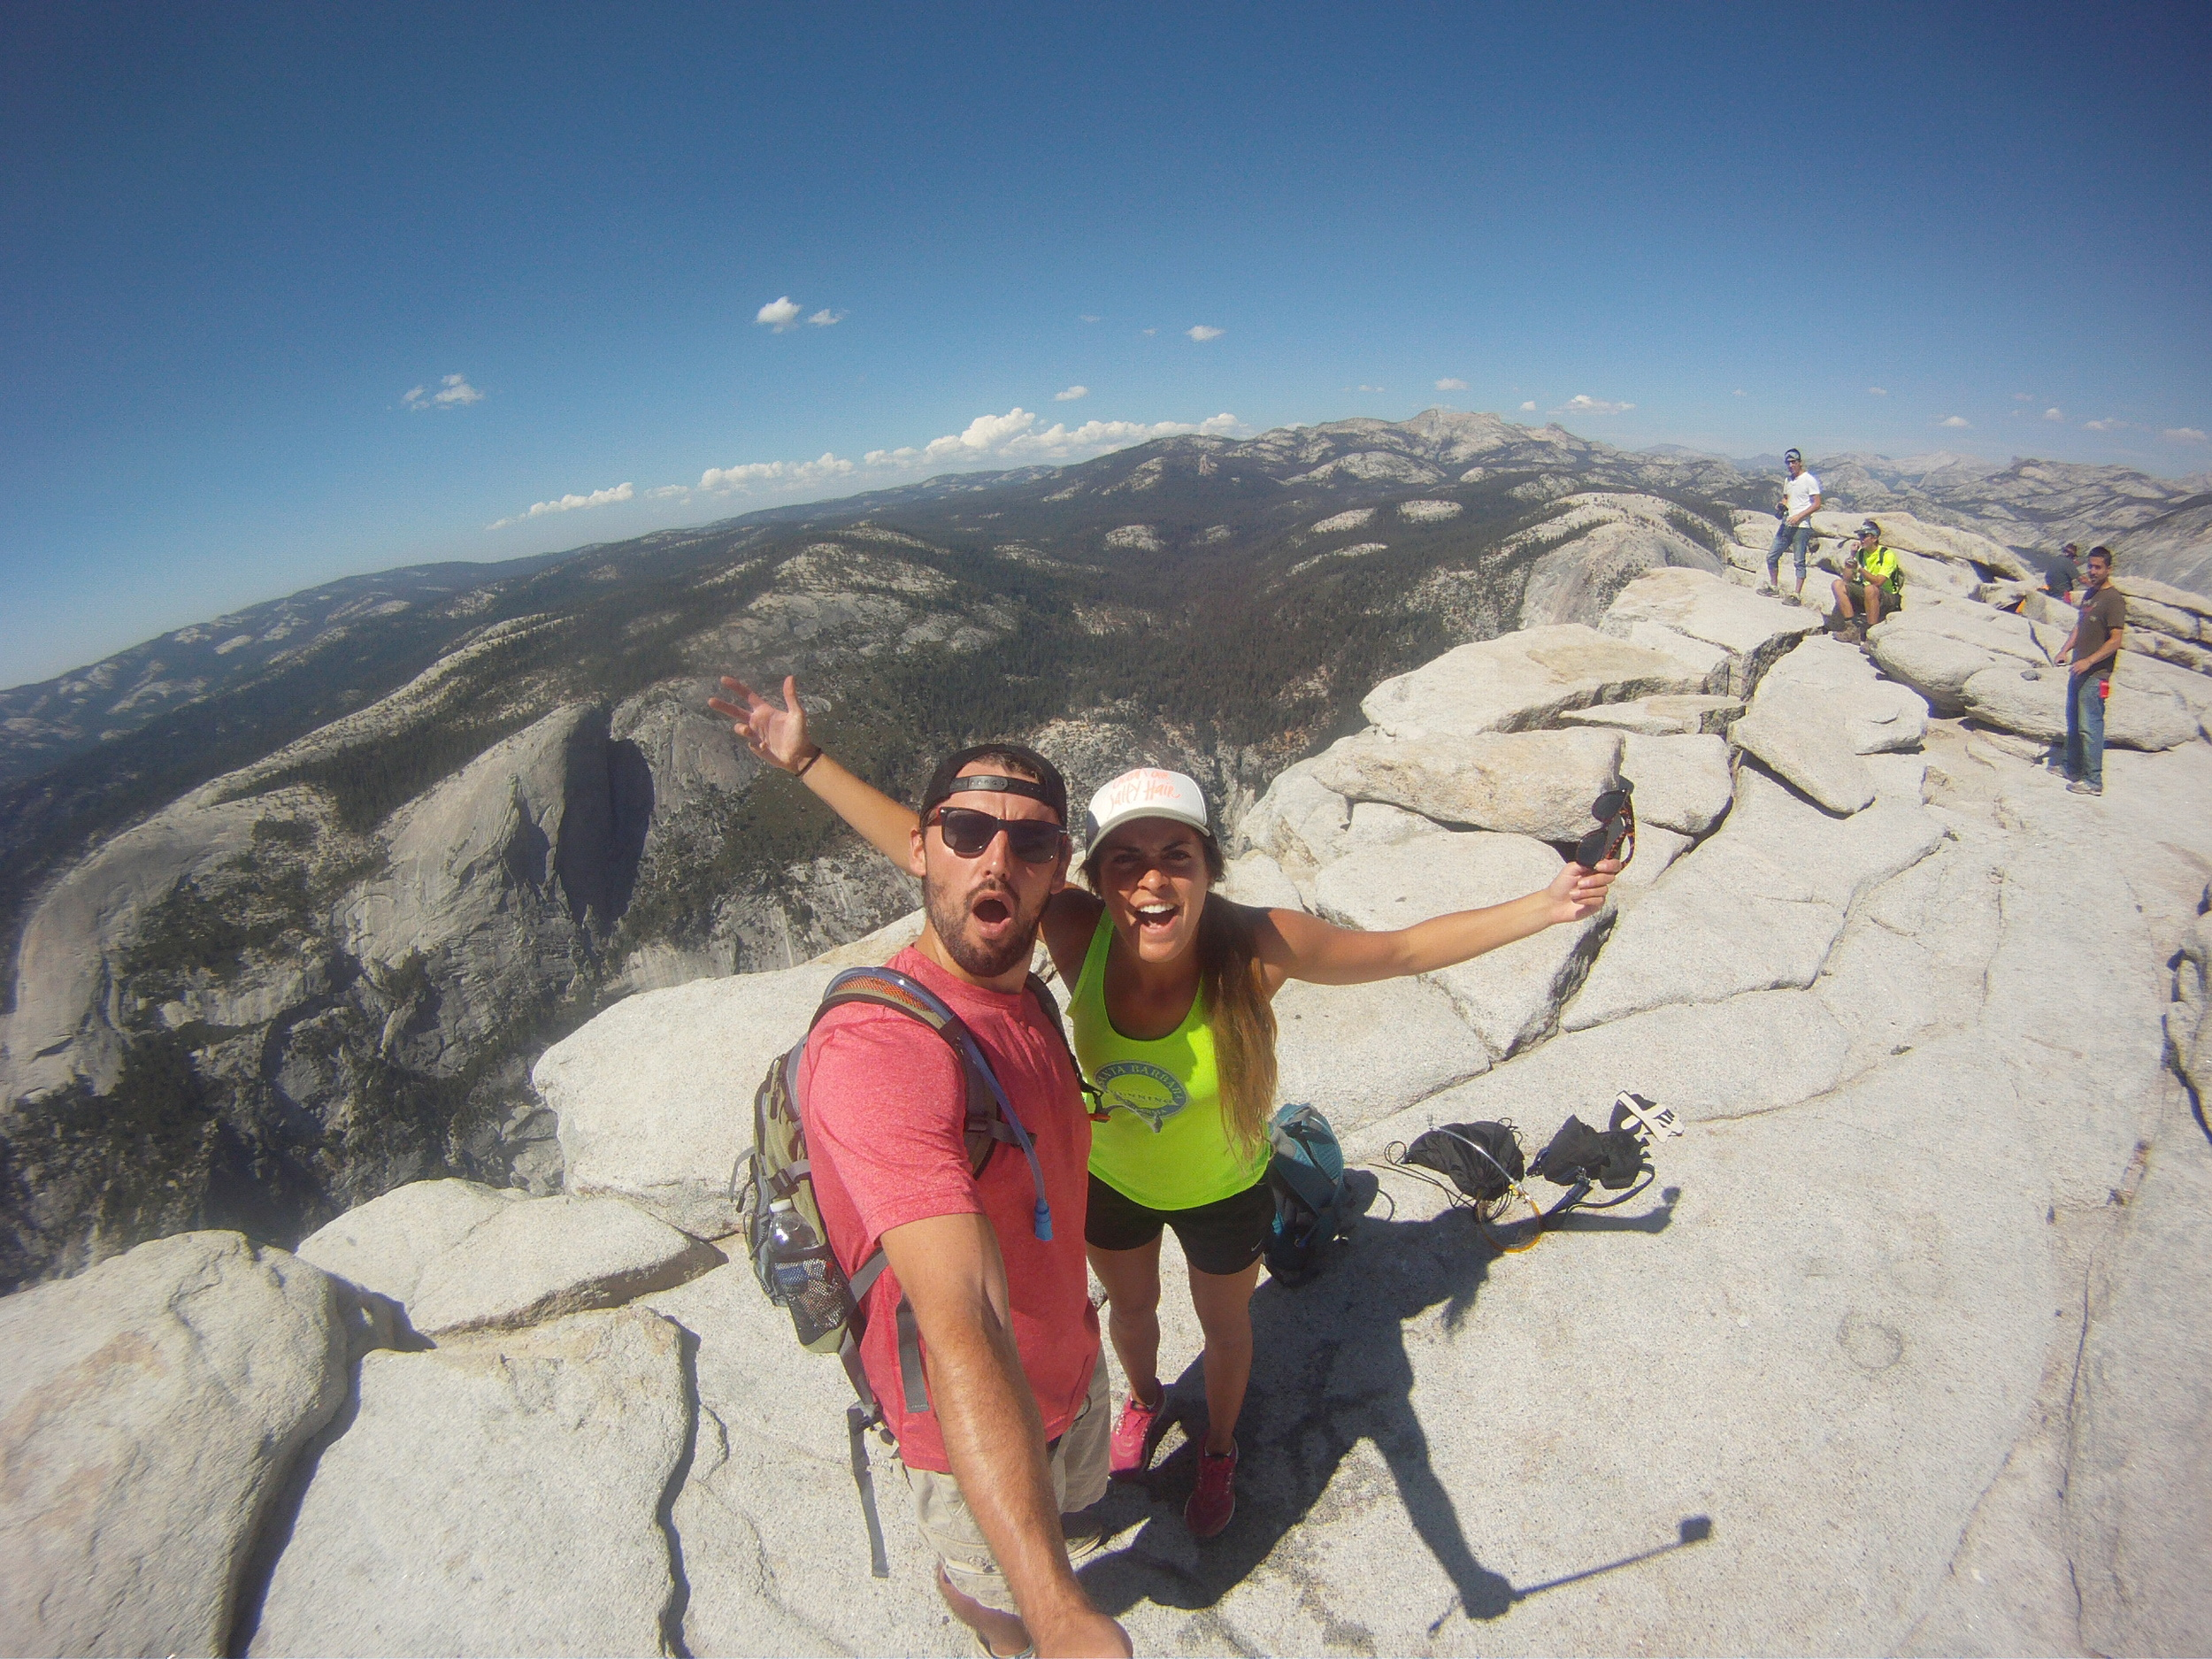 Ronnie and I on top of Half Dome in Yosemite